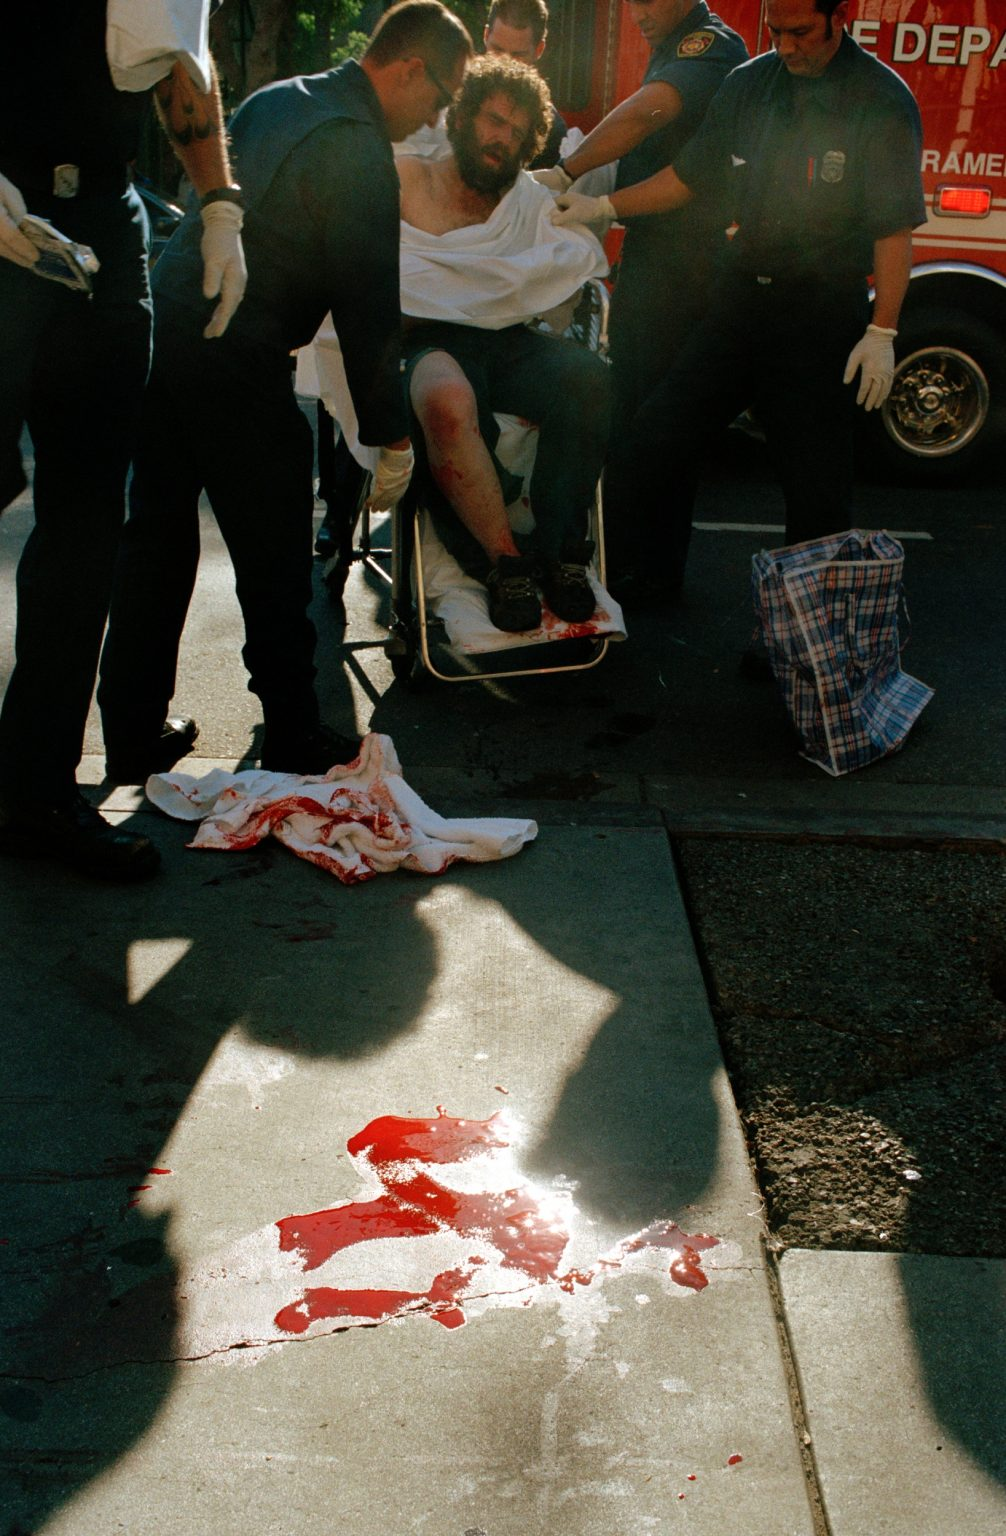 Man stubbed on the street, 5th street. He was then taken to hospital but died due to a fatal wound in his lung. Skid Row, Los Angeles, United States 2004-2005